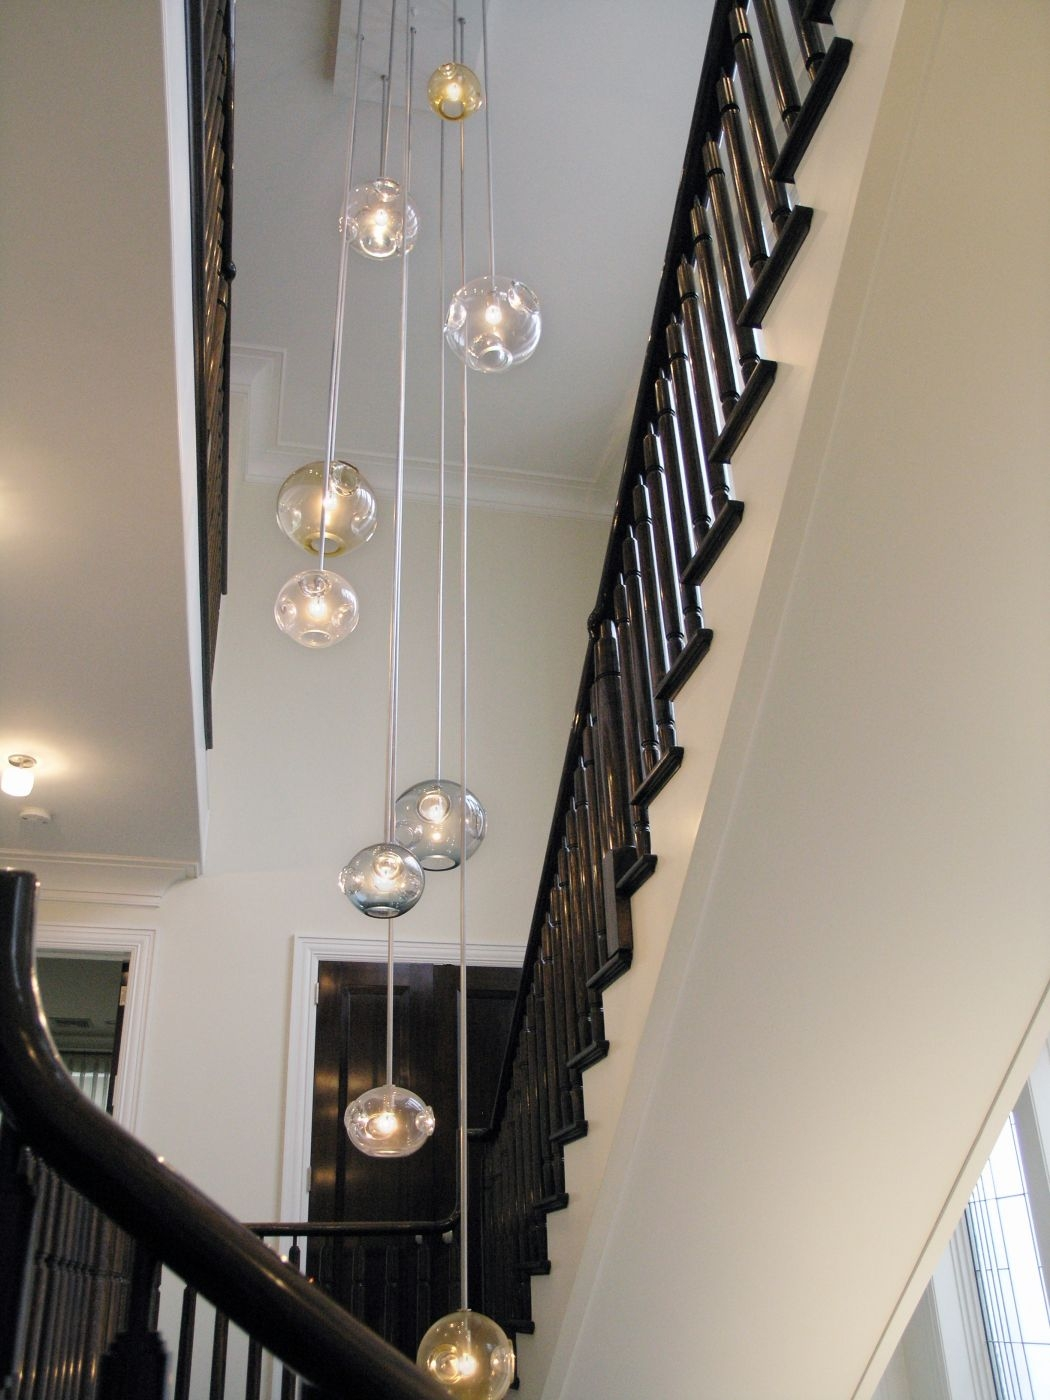 Jgooddesign Aqua Chandelier Within Stairwell Chandeliers (Image 8 of 15)